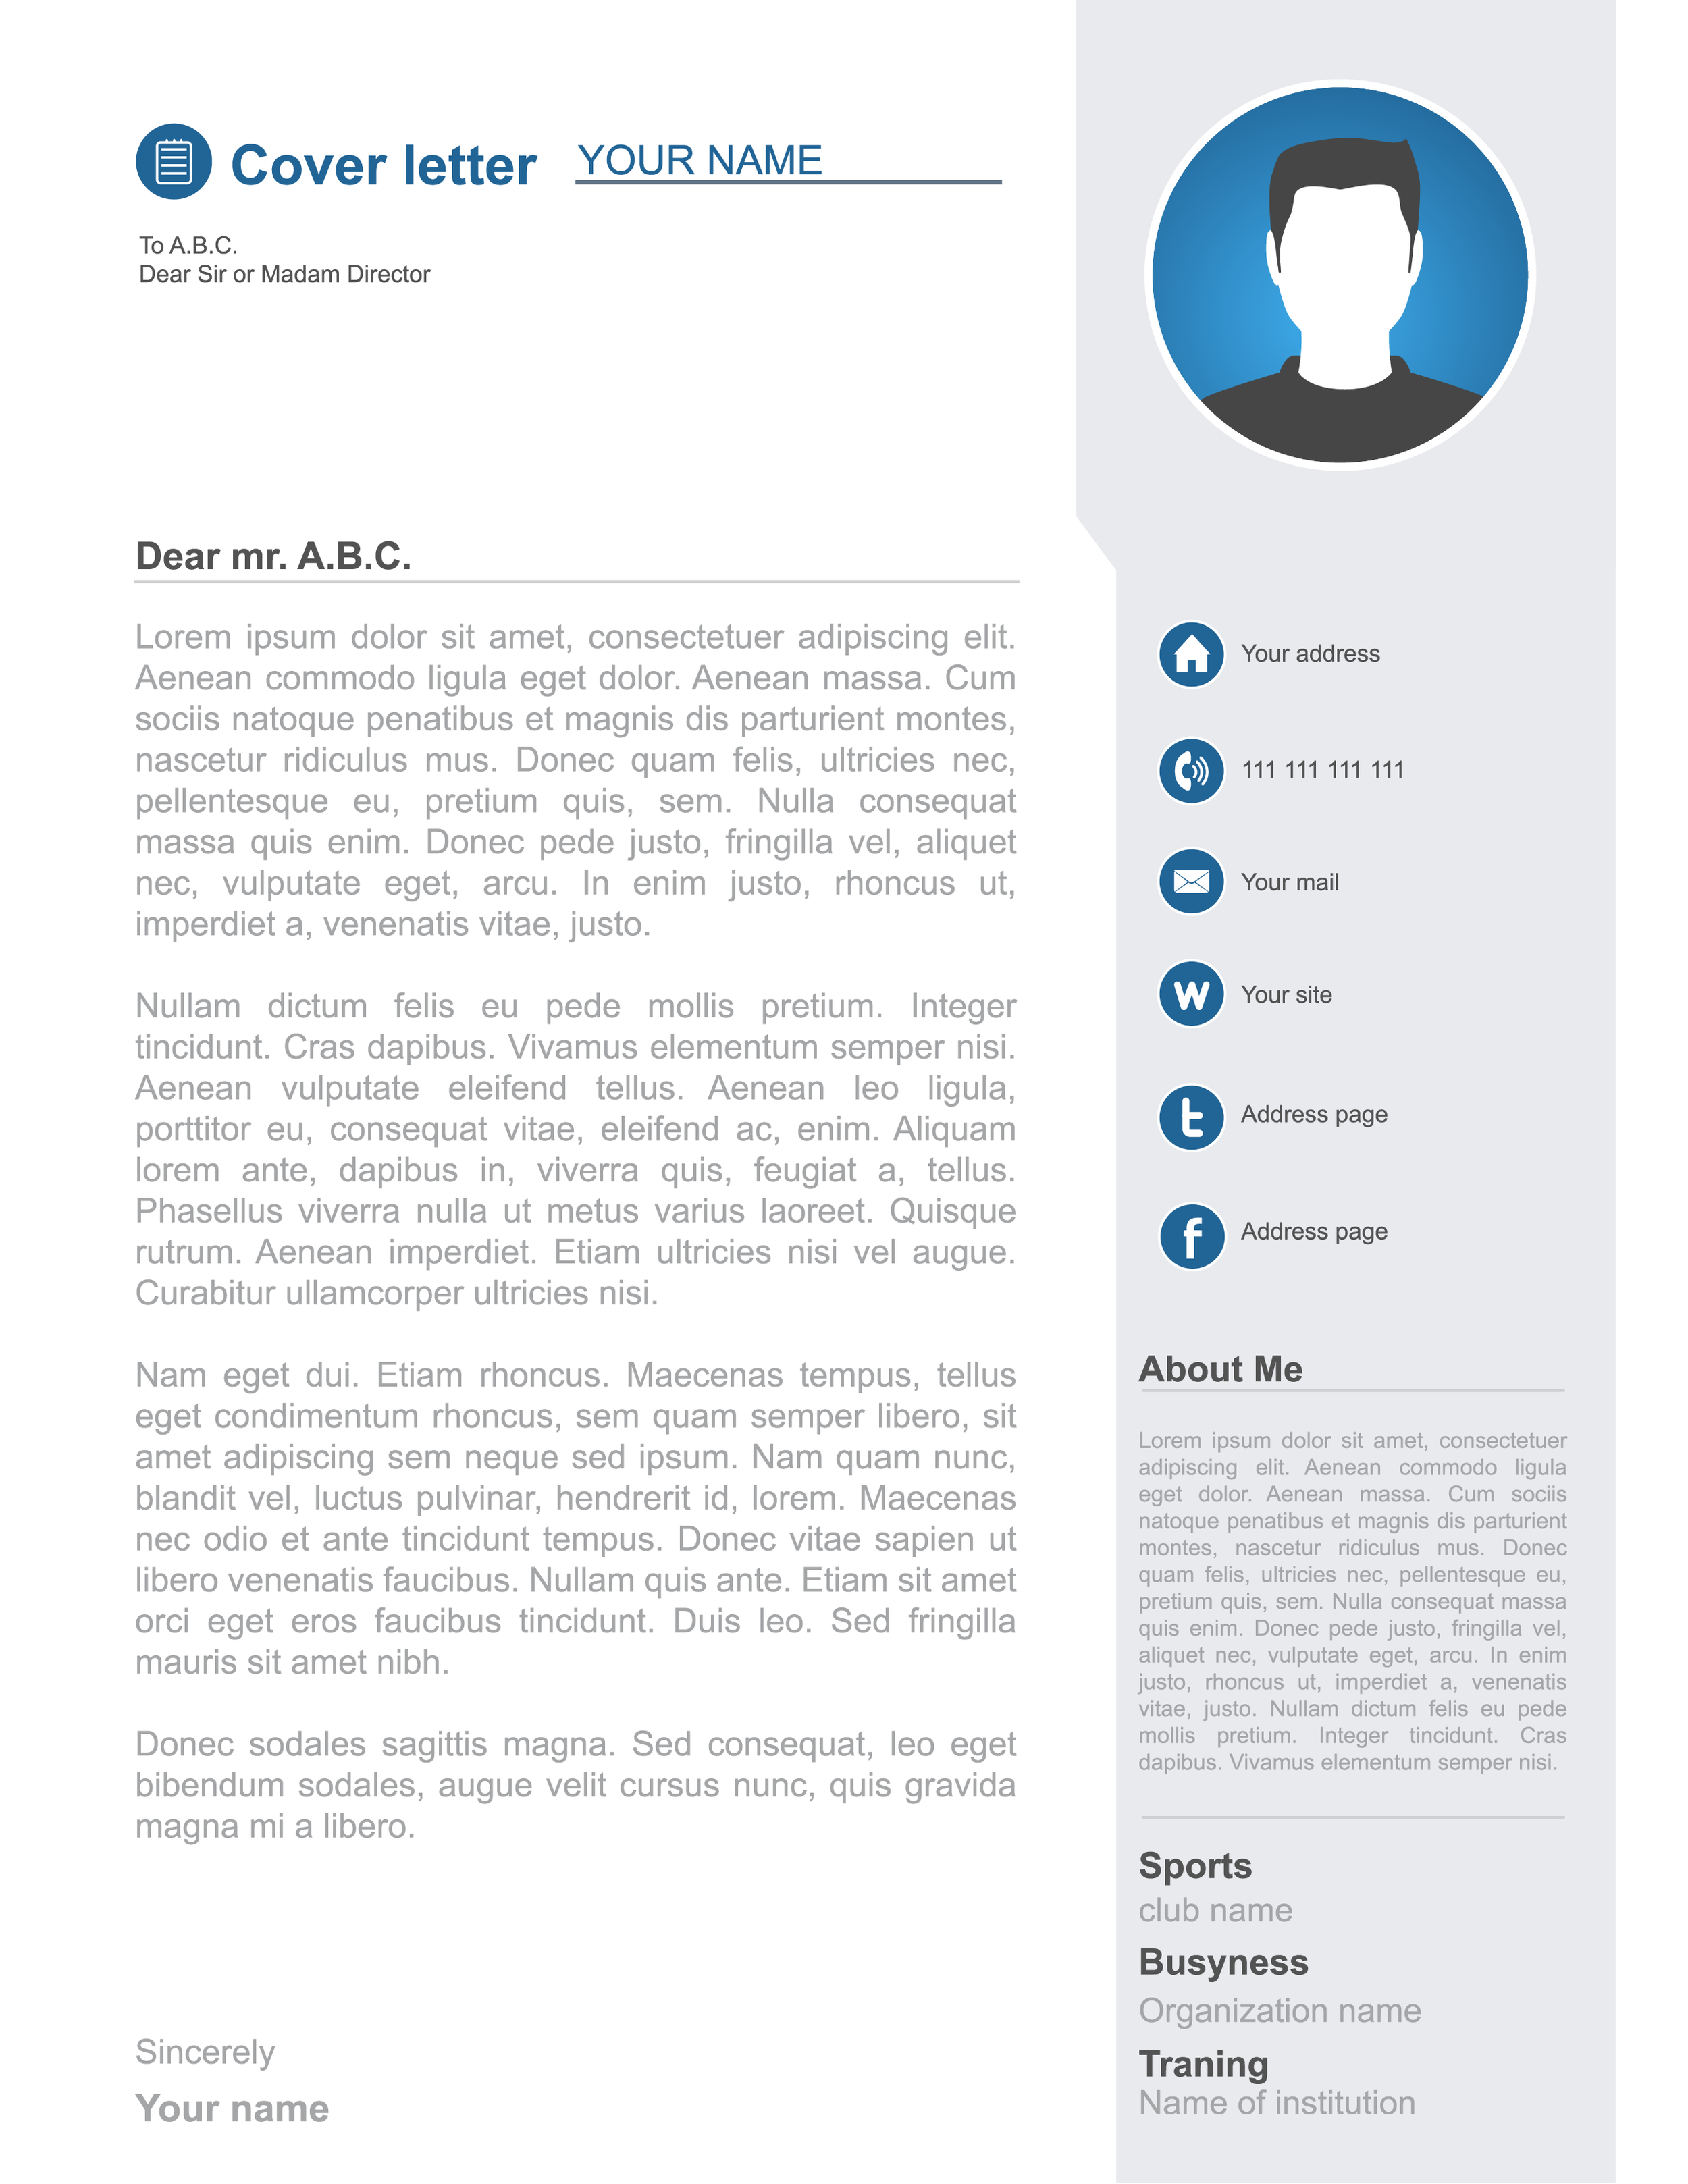 Cover Letter Template 1-01.png